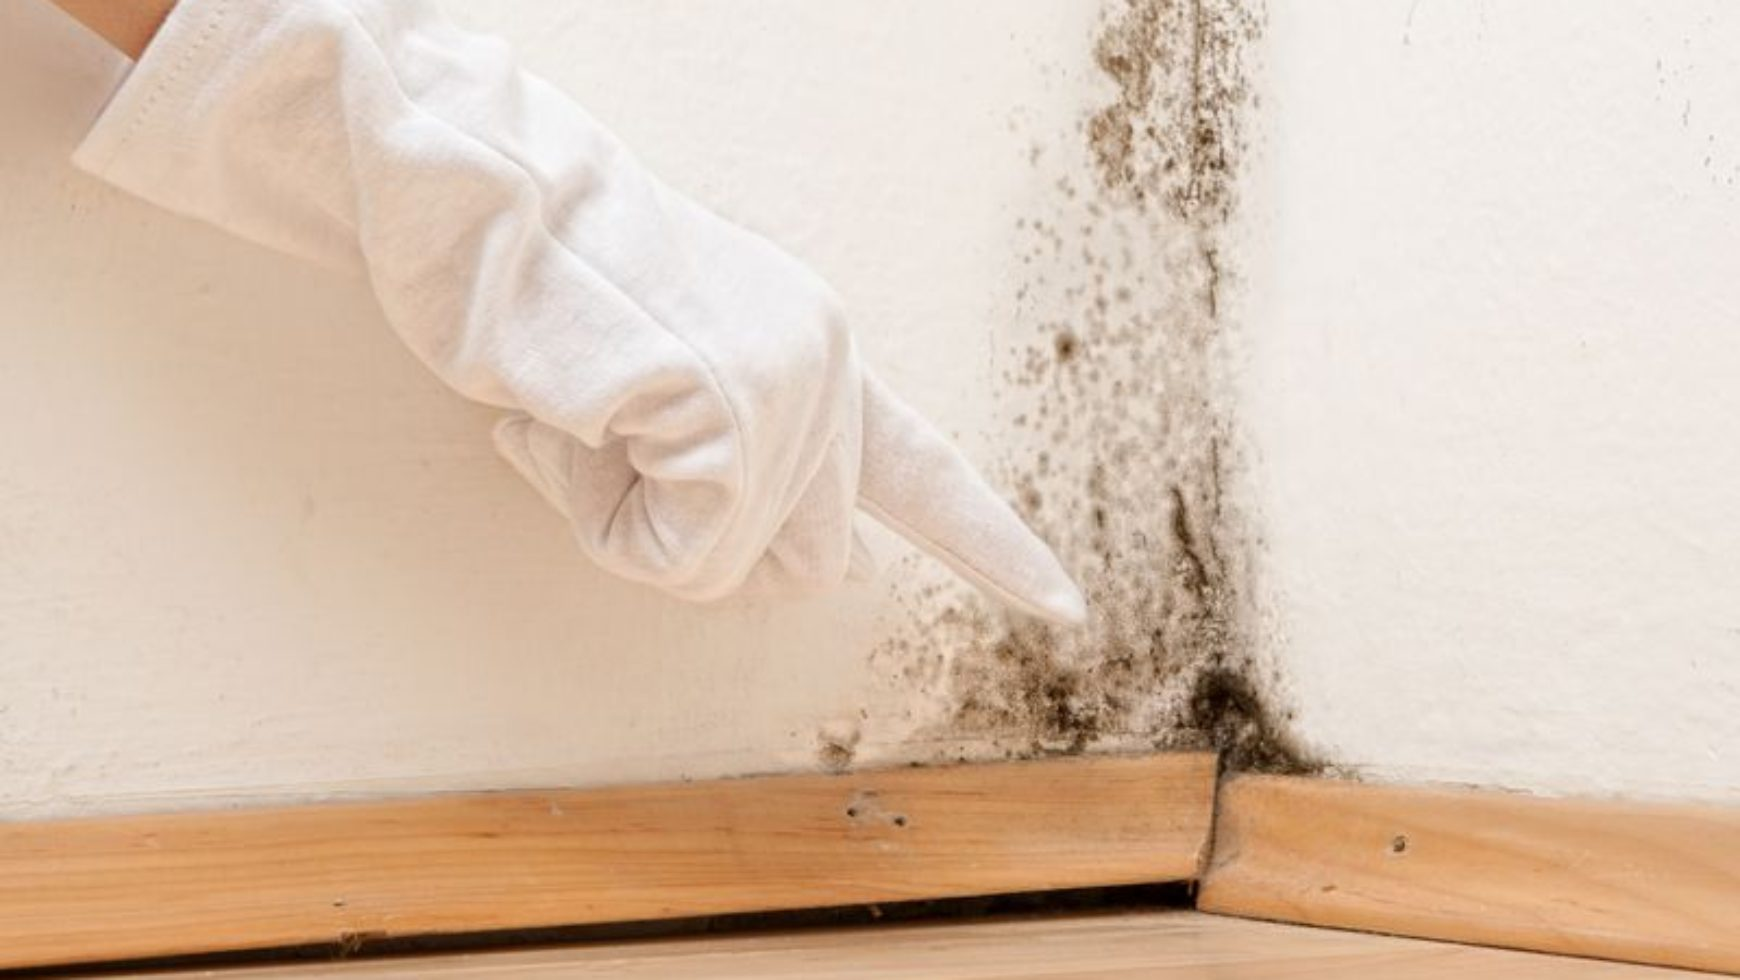 Difference between Mold and Mildew